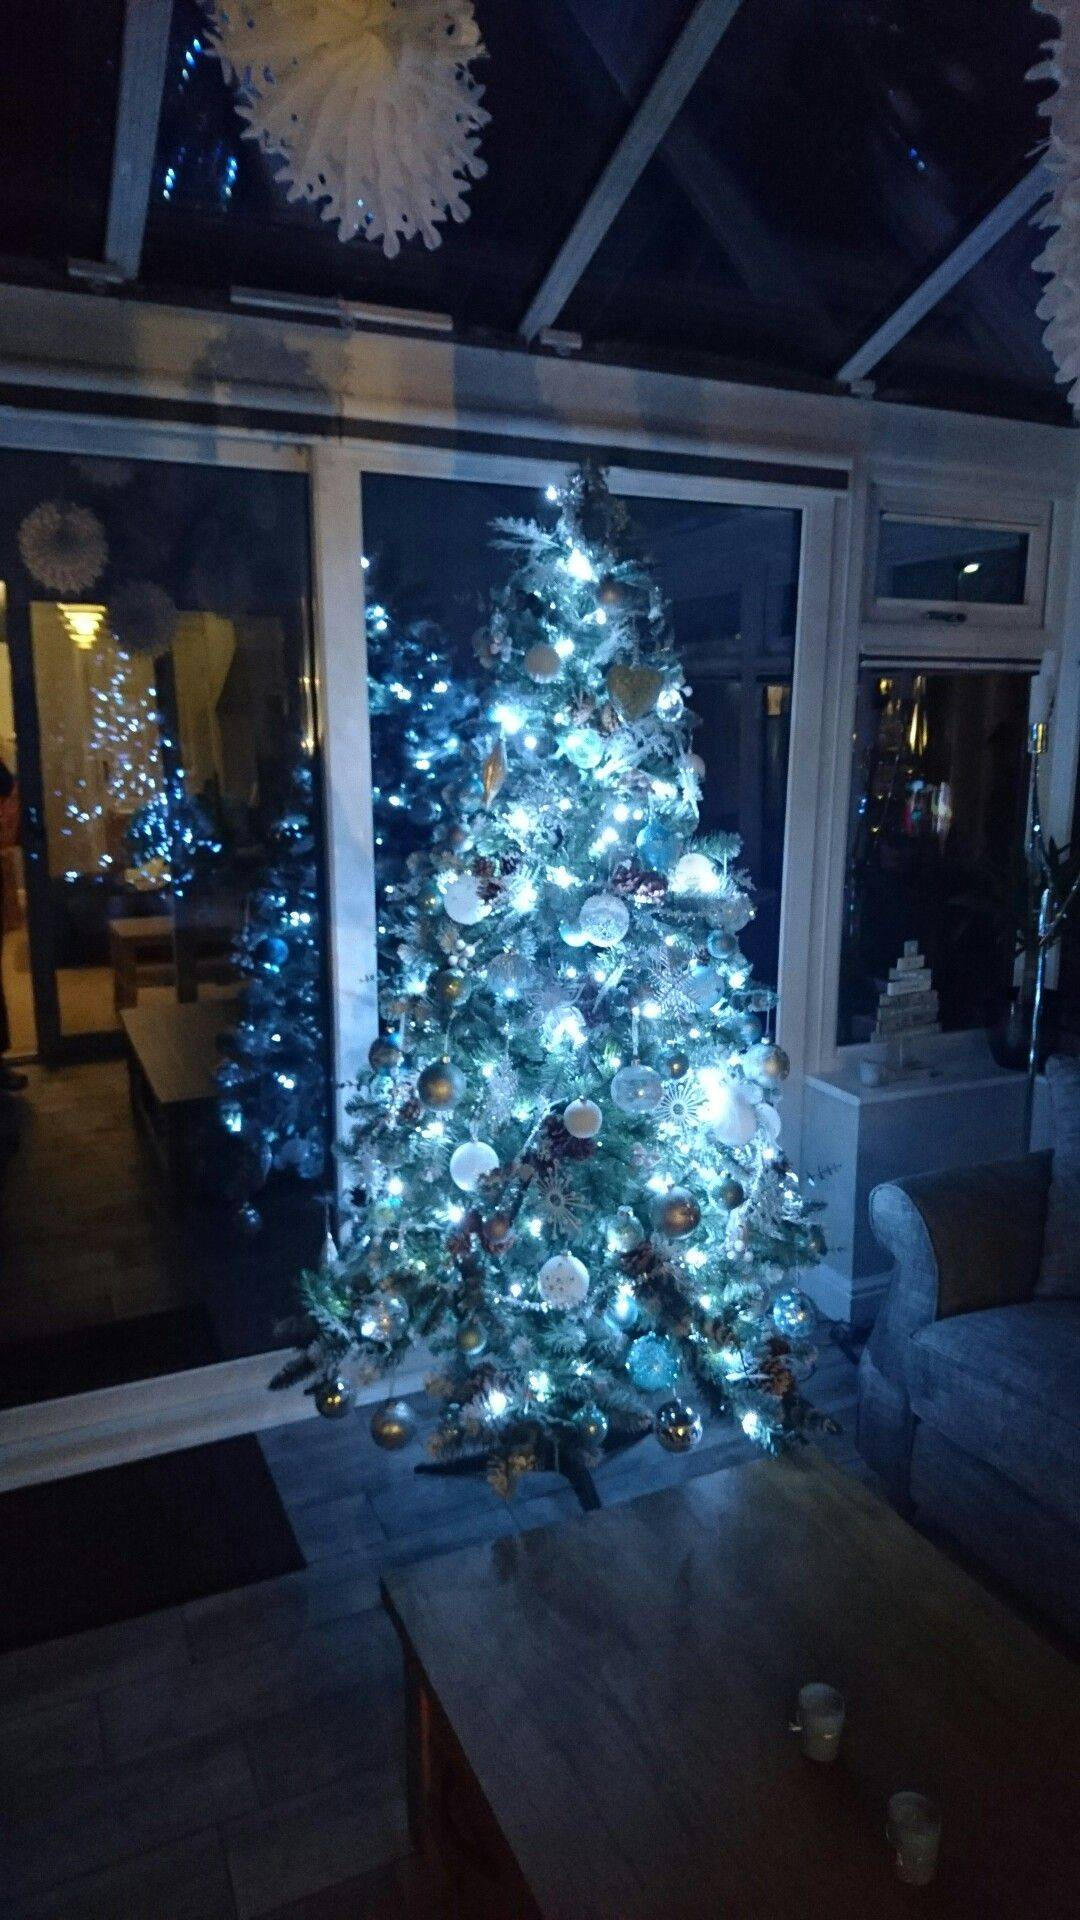 Aqua Blue Christmas Decorations Awesome Christmas Decorations White Silver Glass Blue Green